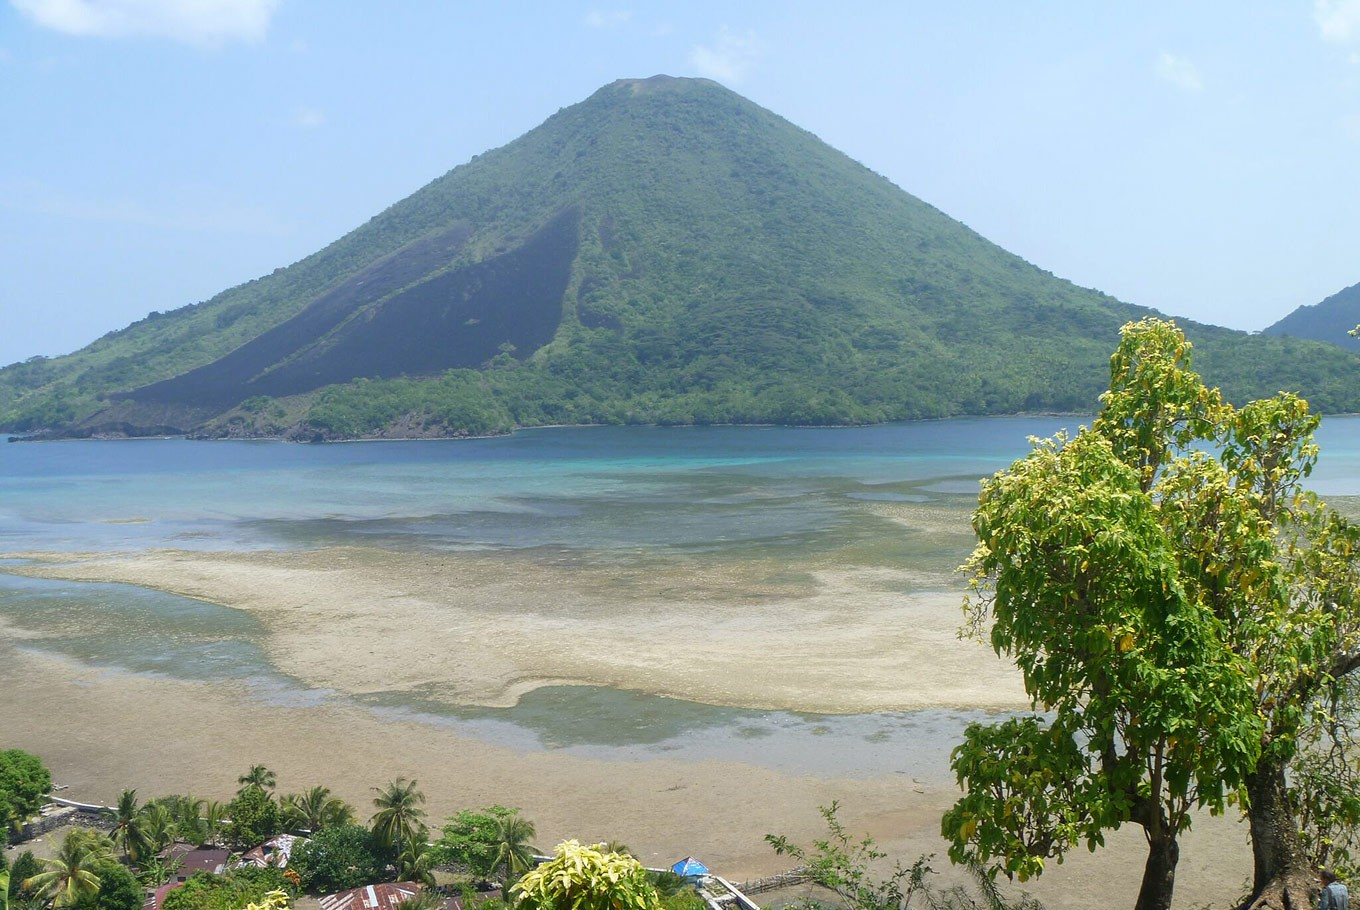 The Banda Islands: From tragedy to tranquil tourist attraction